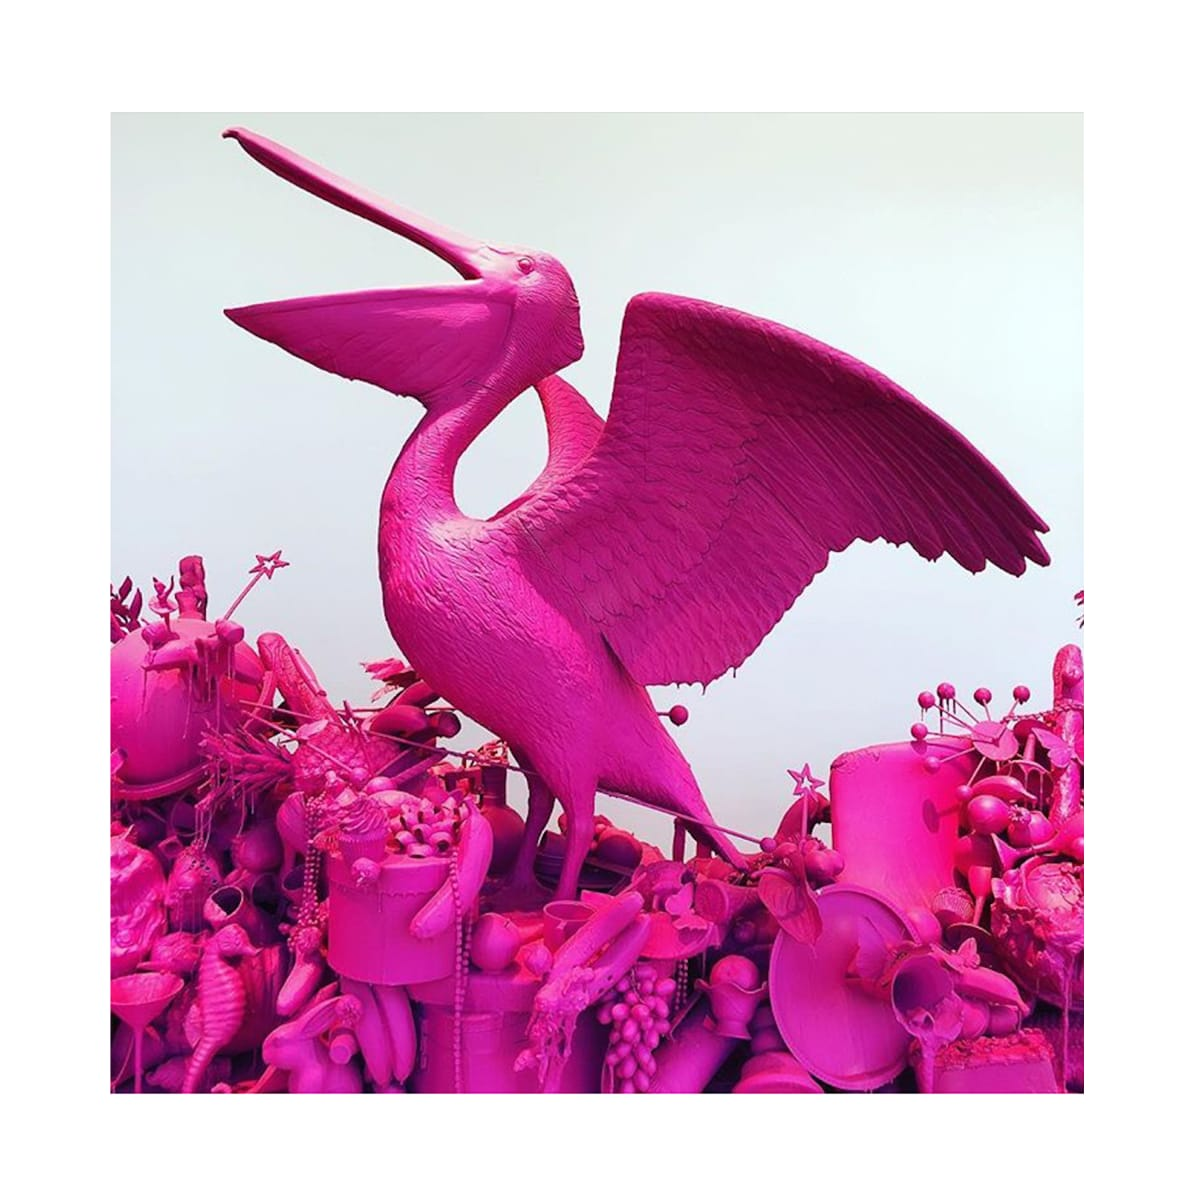 Let Them Feel Pink and La Silla, 2012